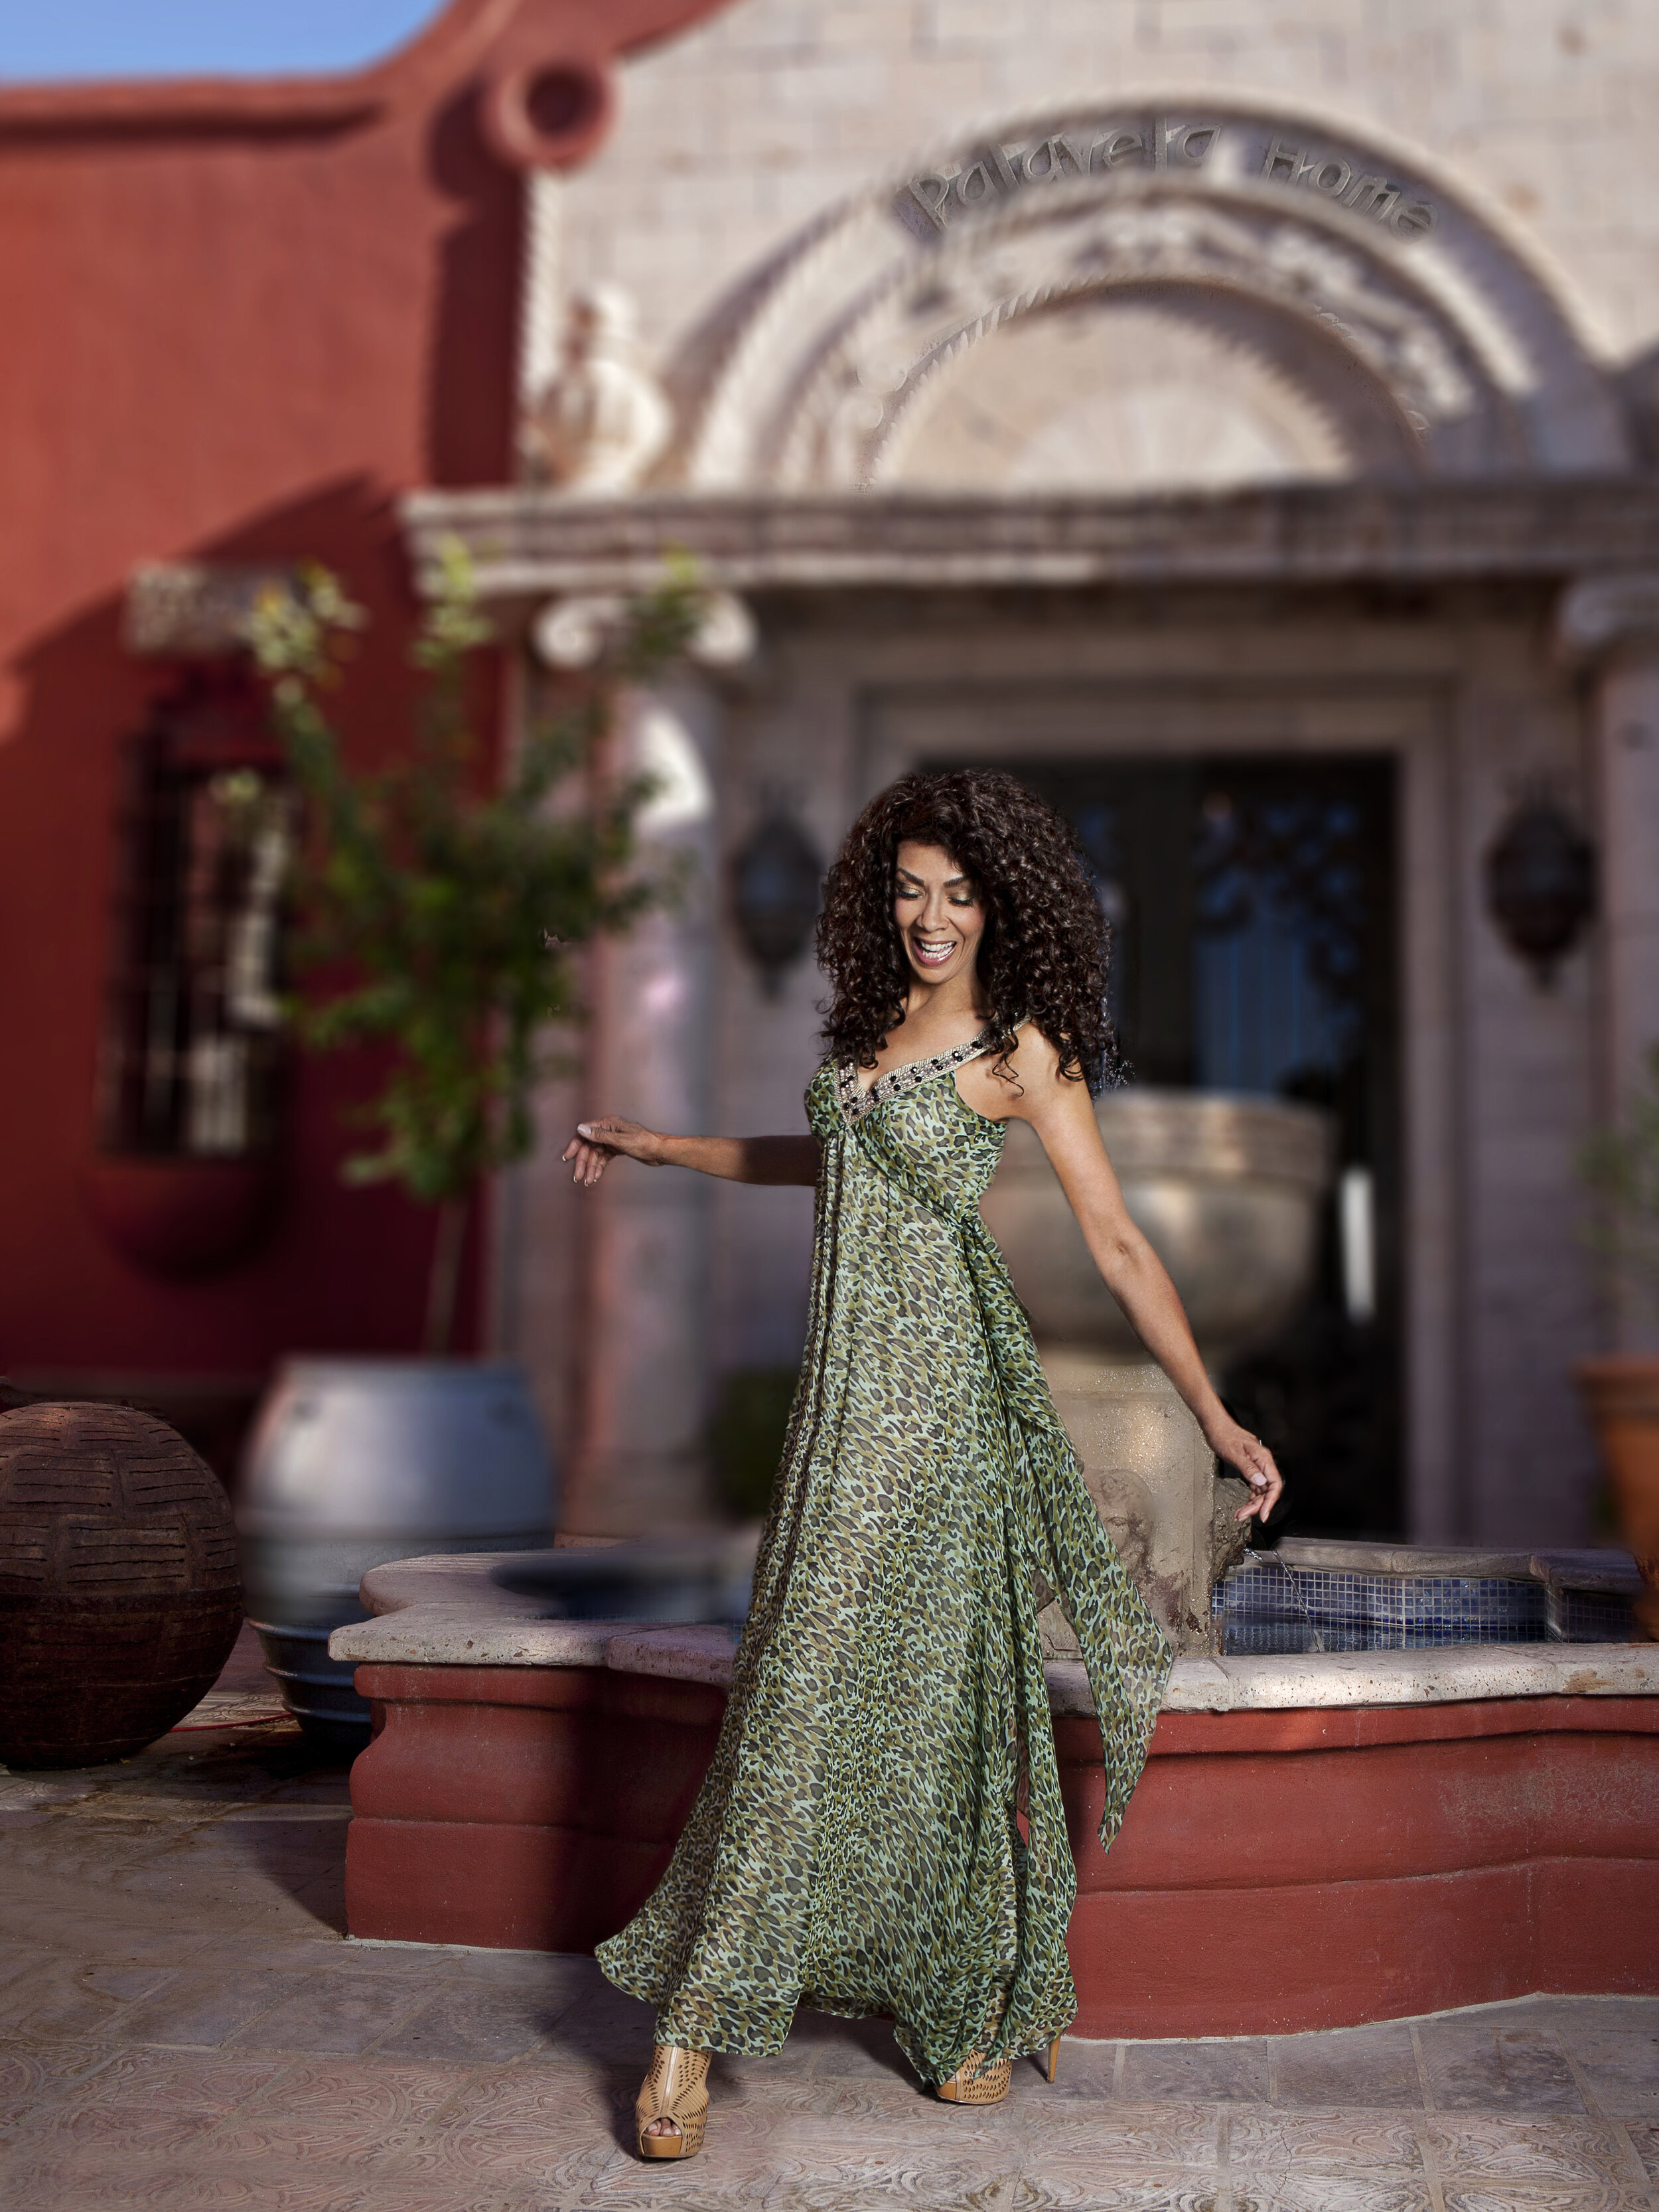 Bespoke flowy maxi dress made of animal print chiffon desinged by Alis Fashion Design for mother of the bride.jpg